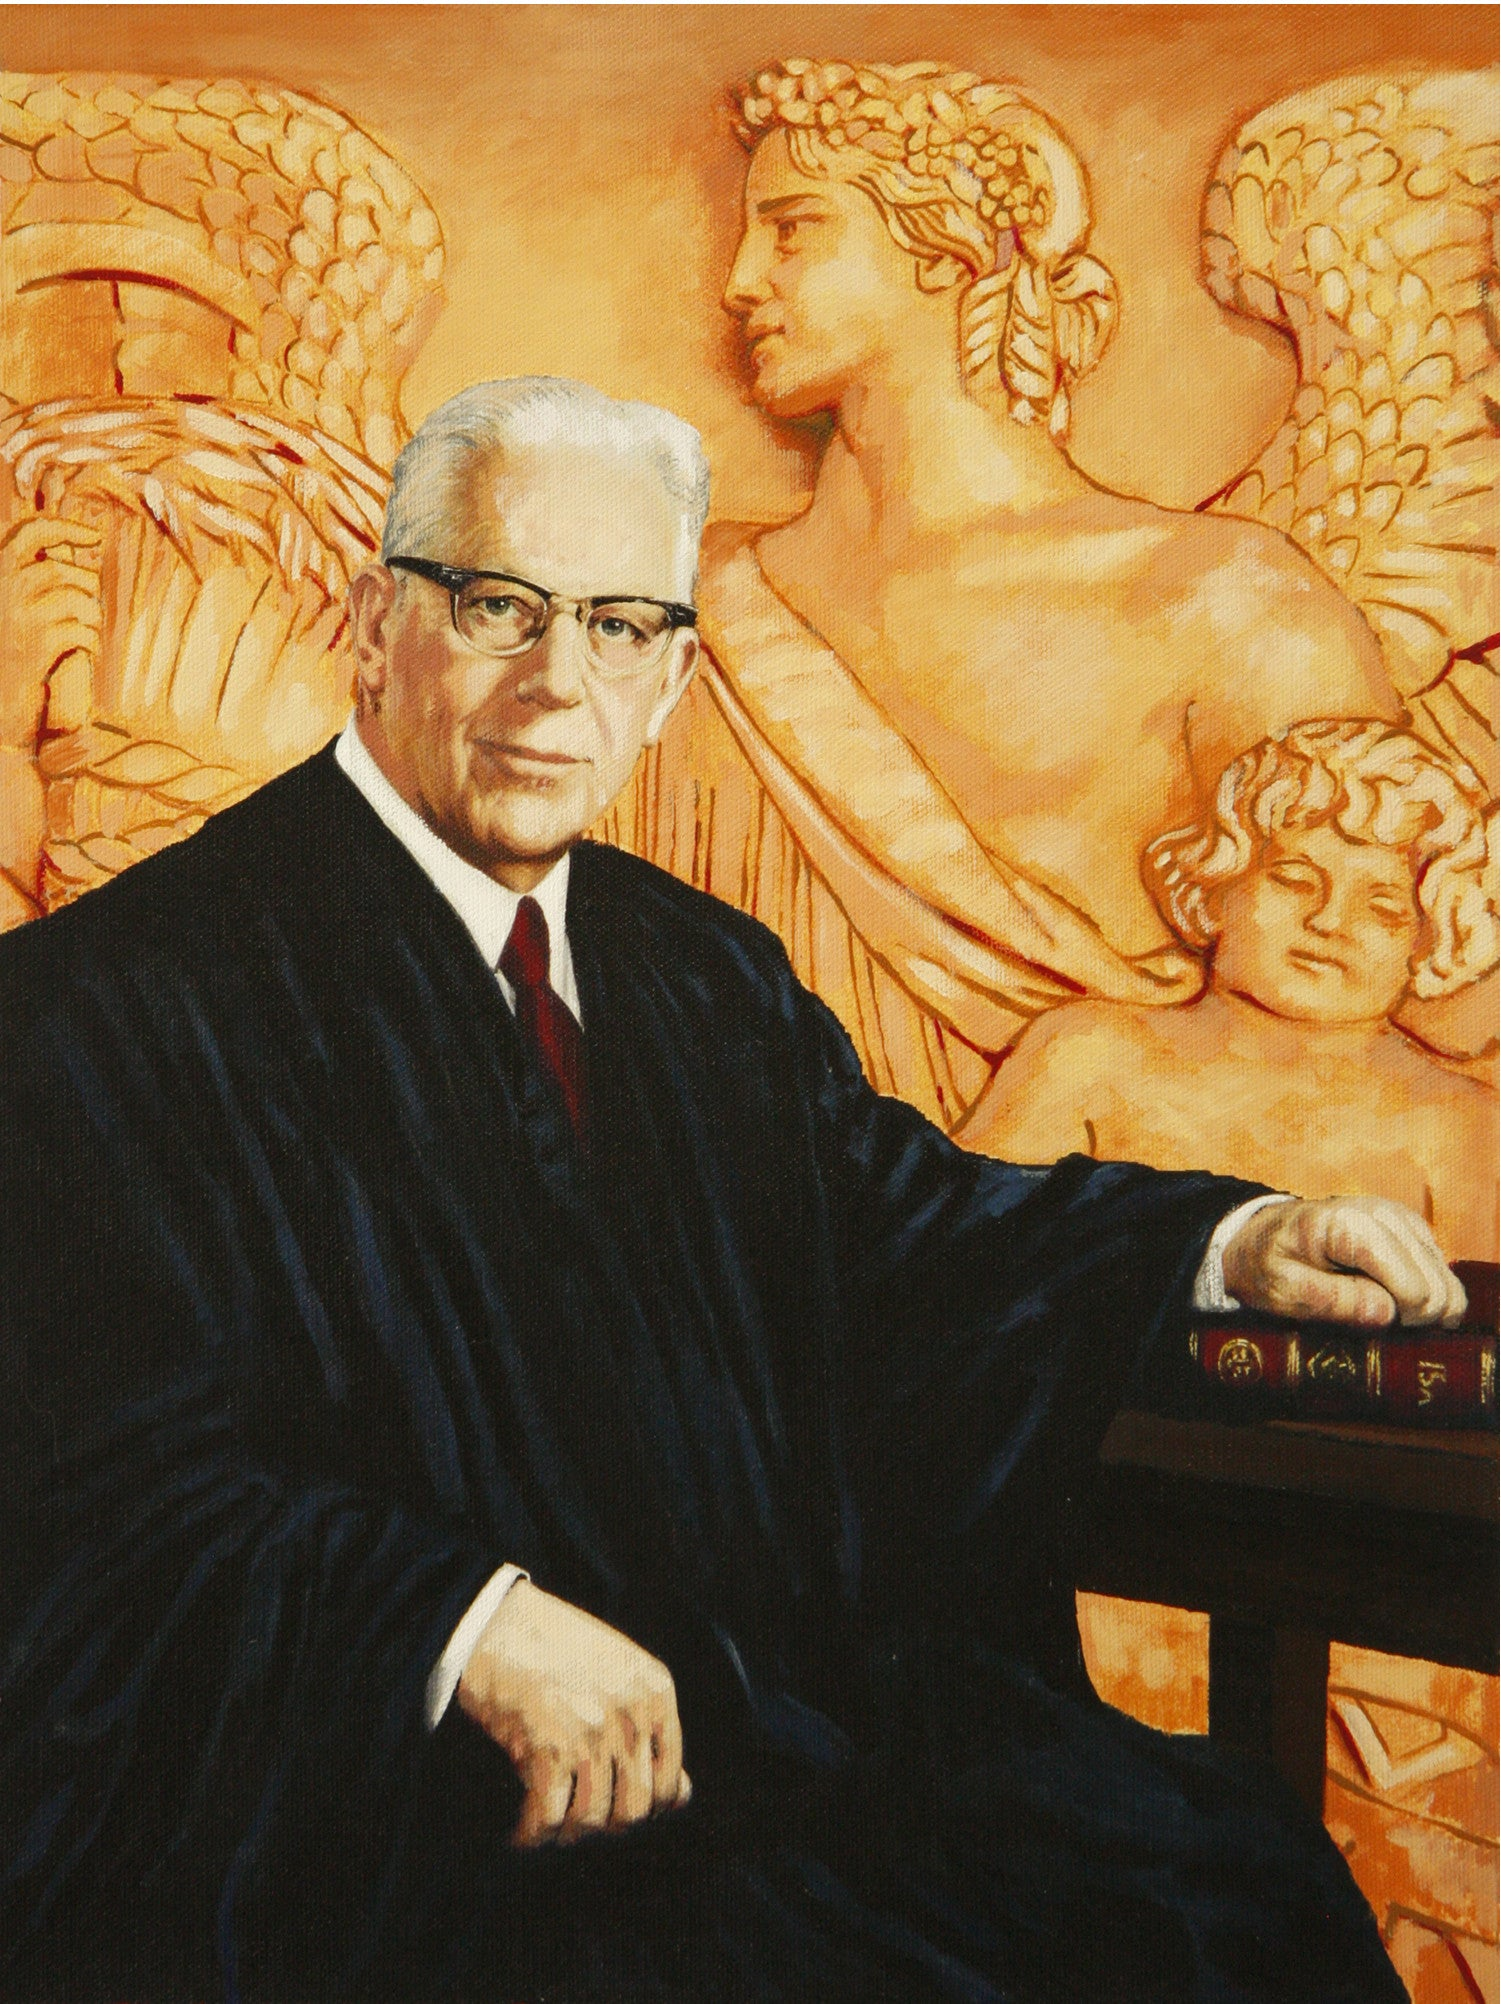 Chief Justice Earl Warren against the Supreme Court north frieze by artist Trevor Goring